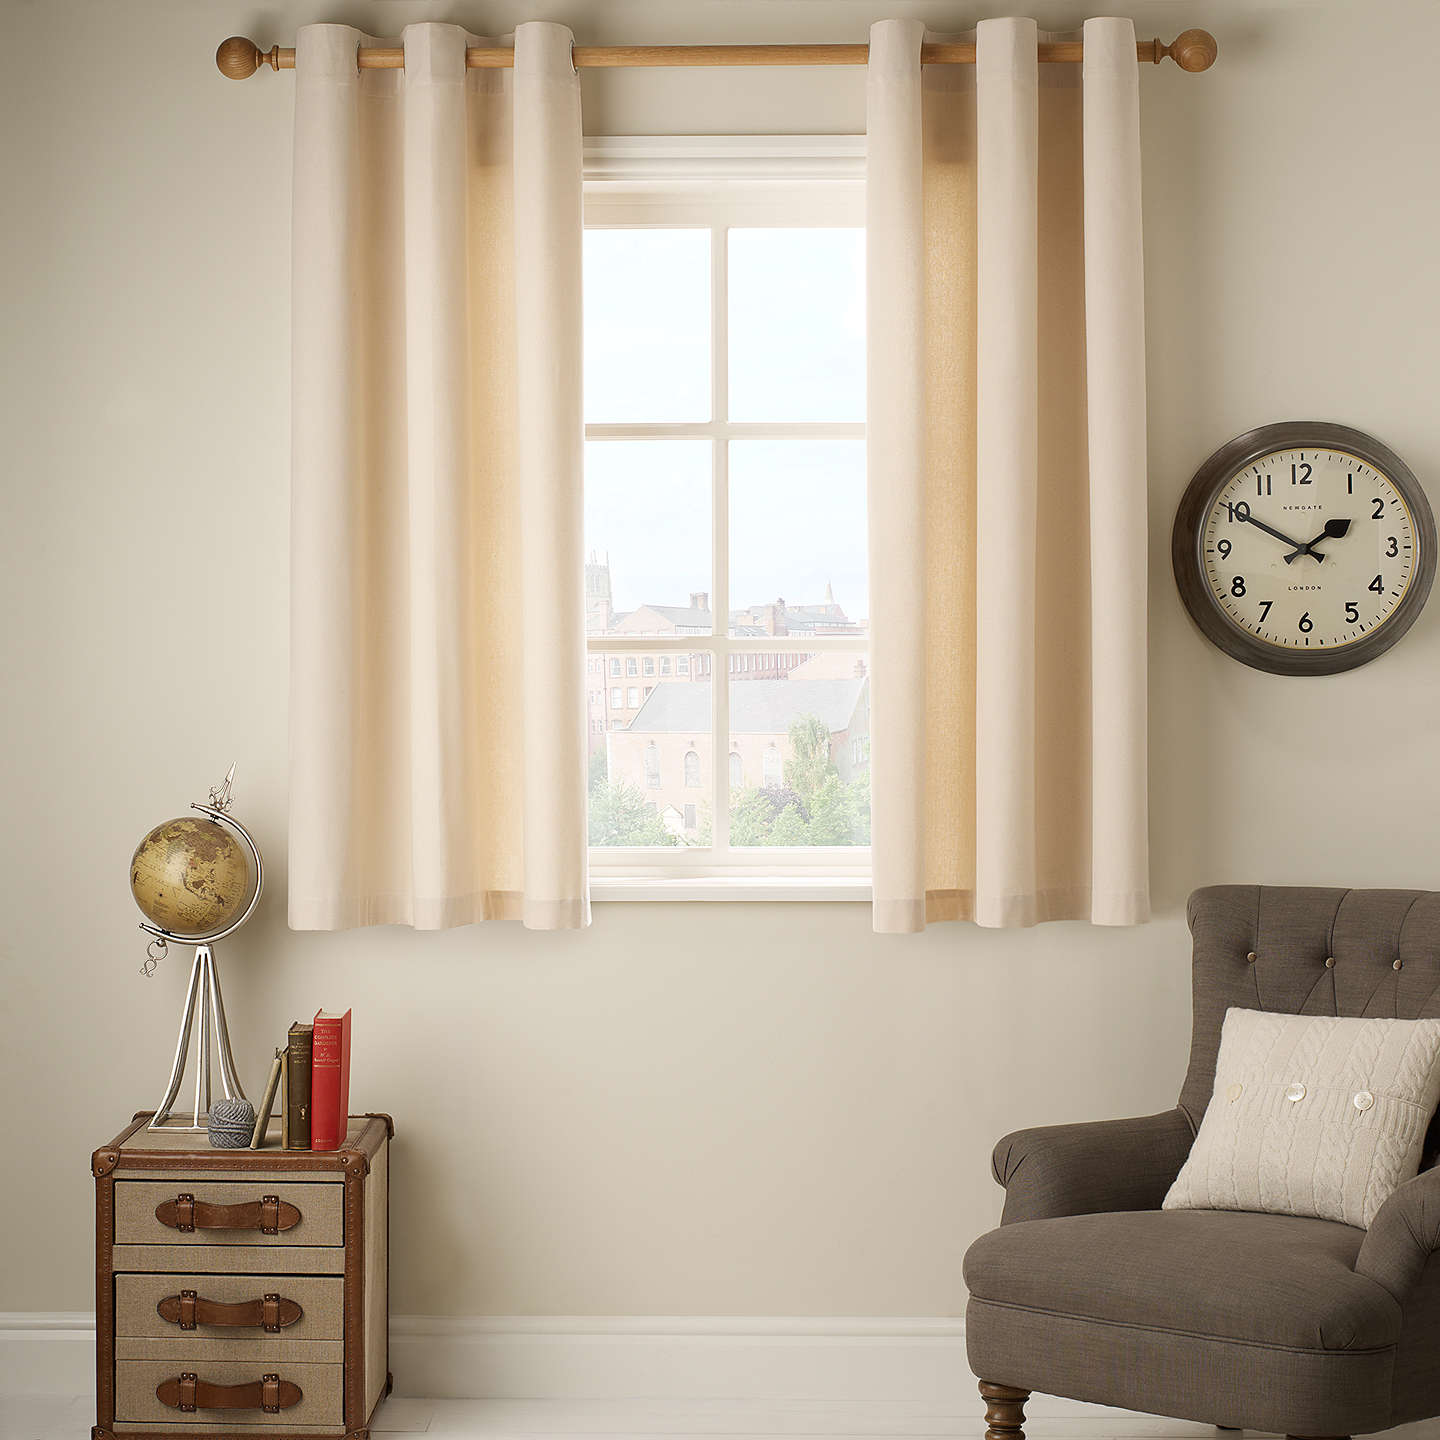 BuyJohn Lewis The Basics Pair Plain Cotton Unlined Eyelet Curtains, Natural, W130 x Drop 228cm Online at johnlewis.com